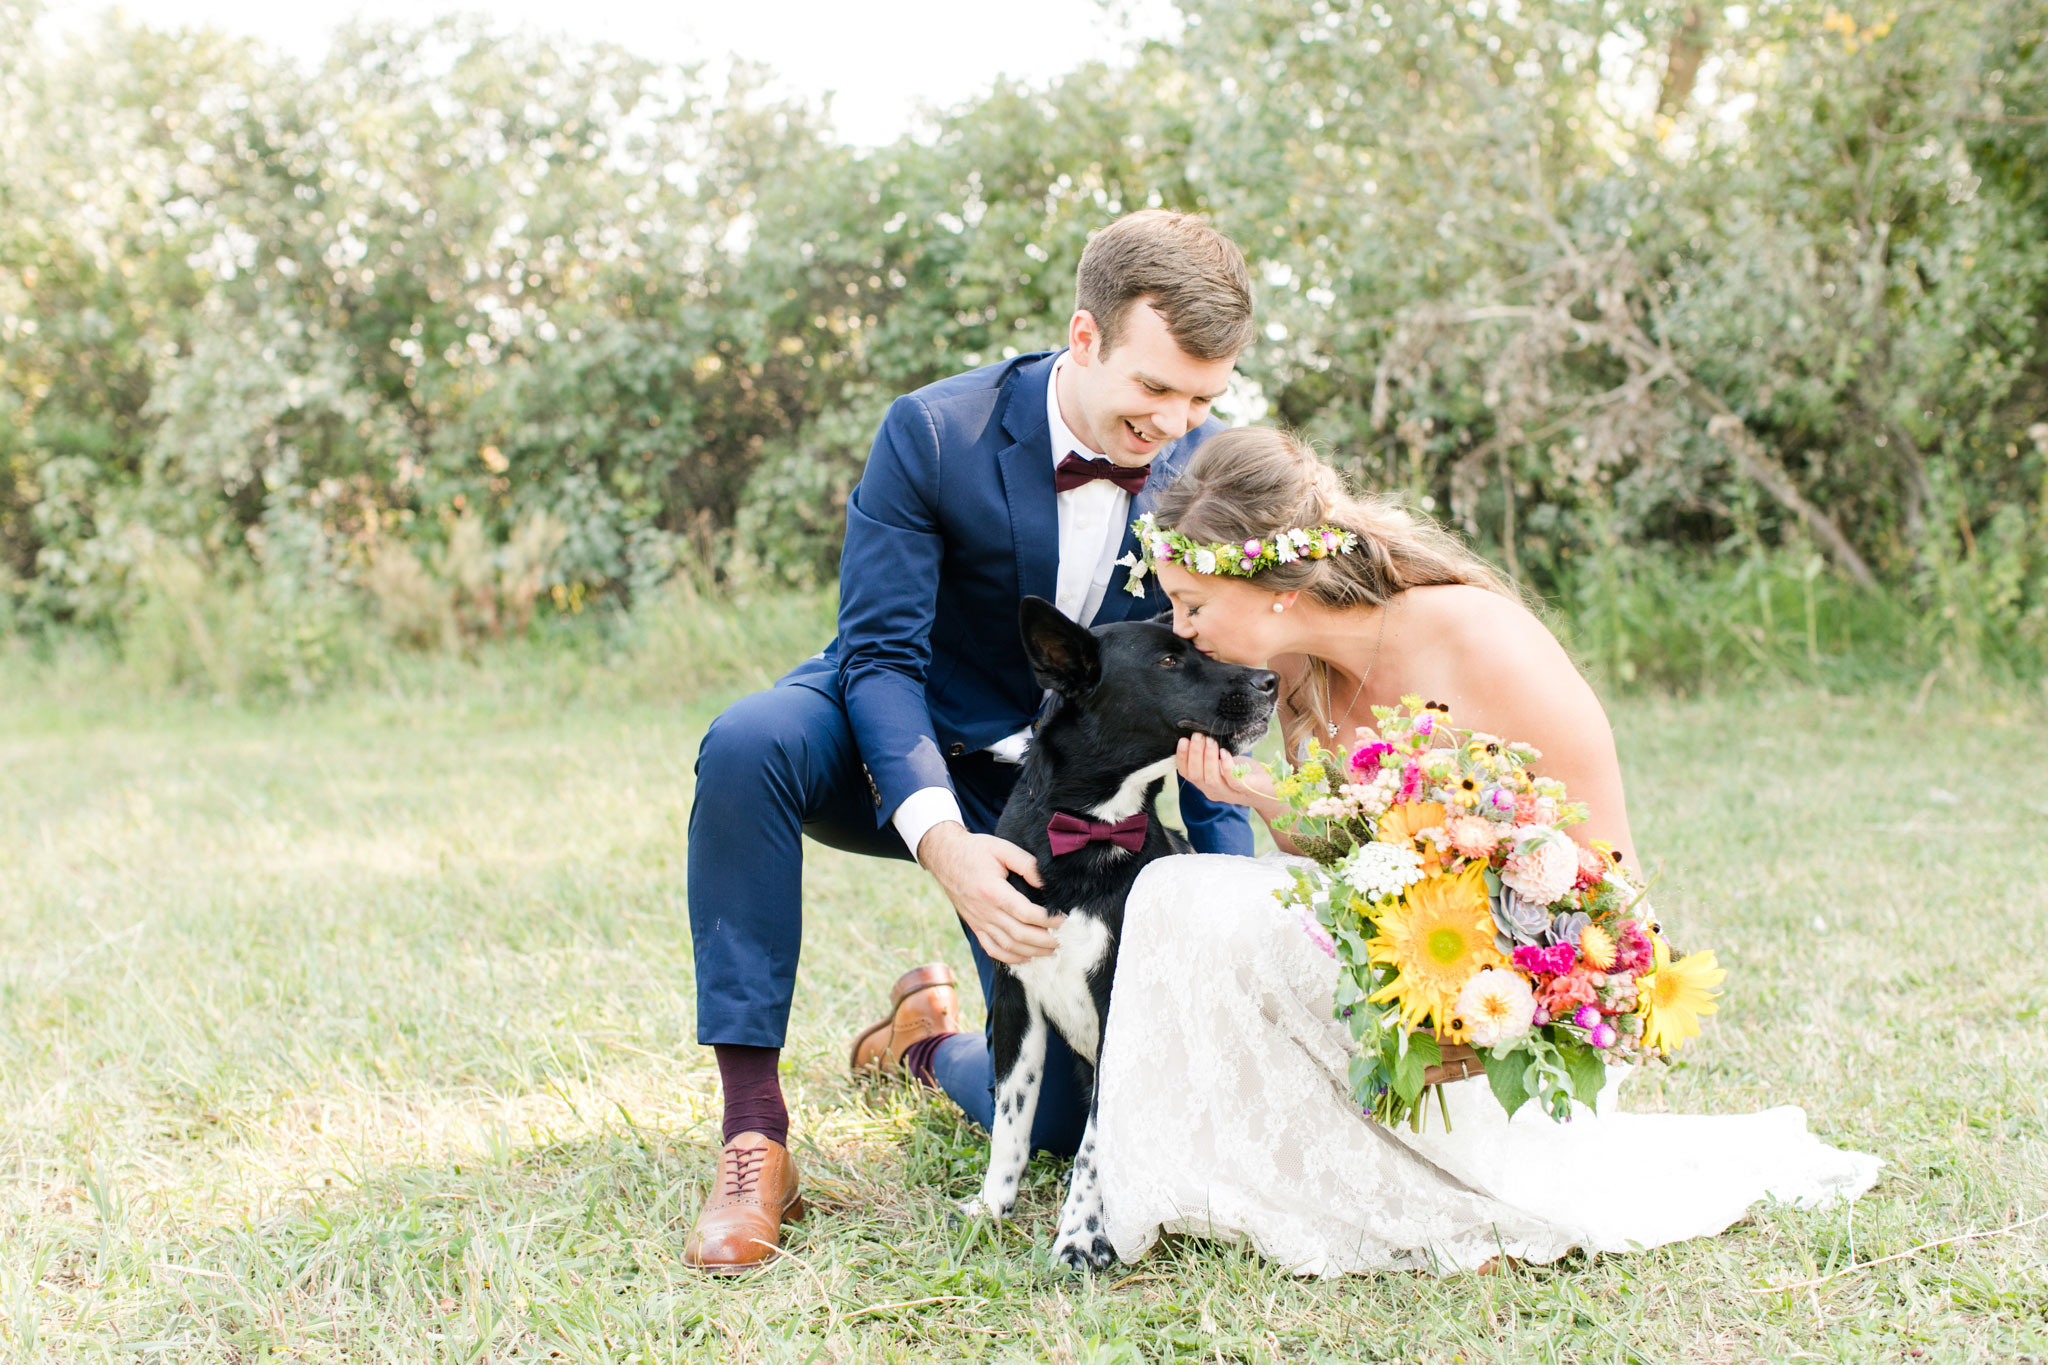 Bride + Groom + Dog | A Boho Garden Wedding in Colorado